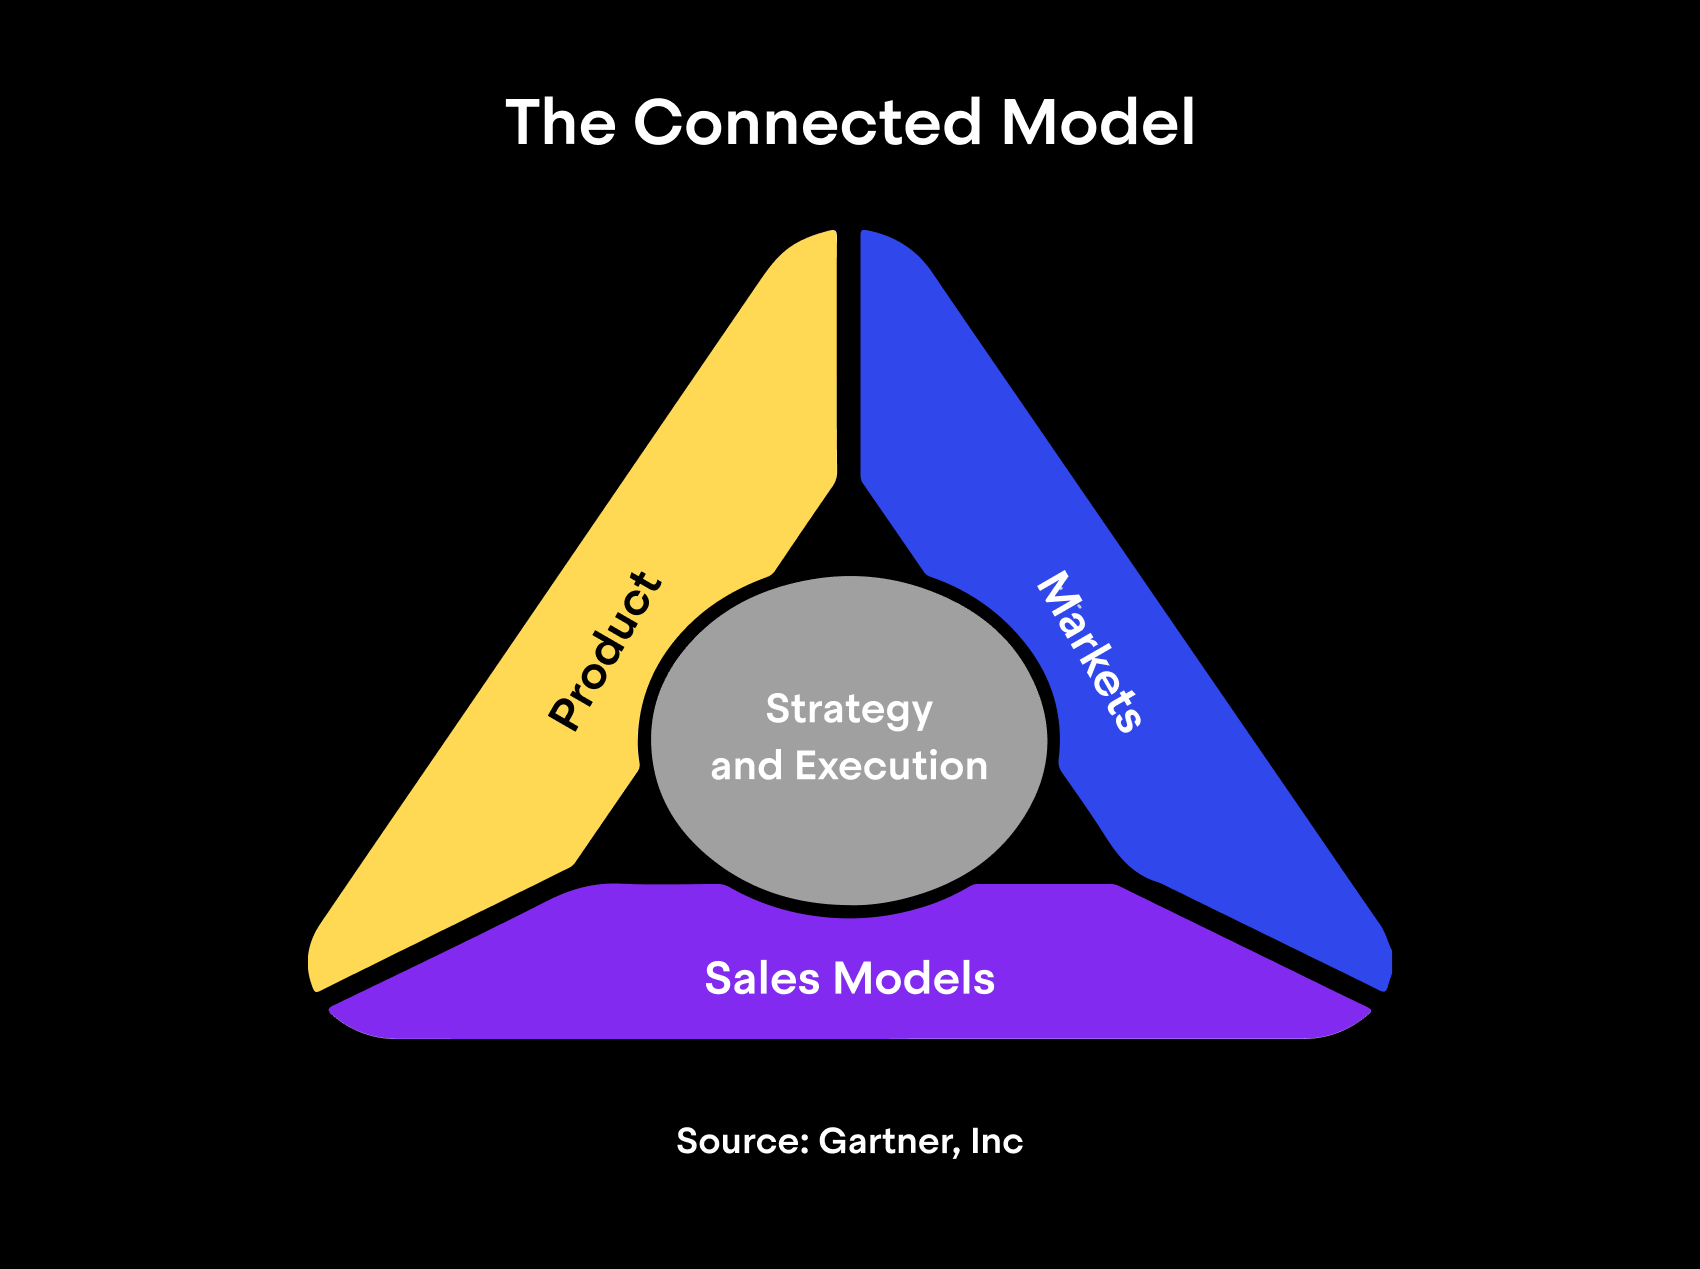 The Connected Model (graph)